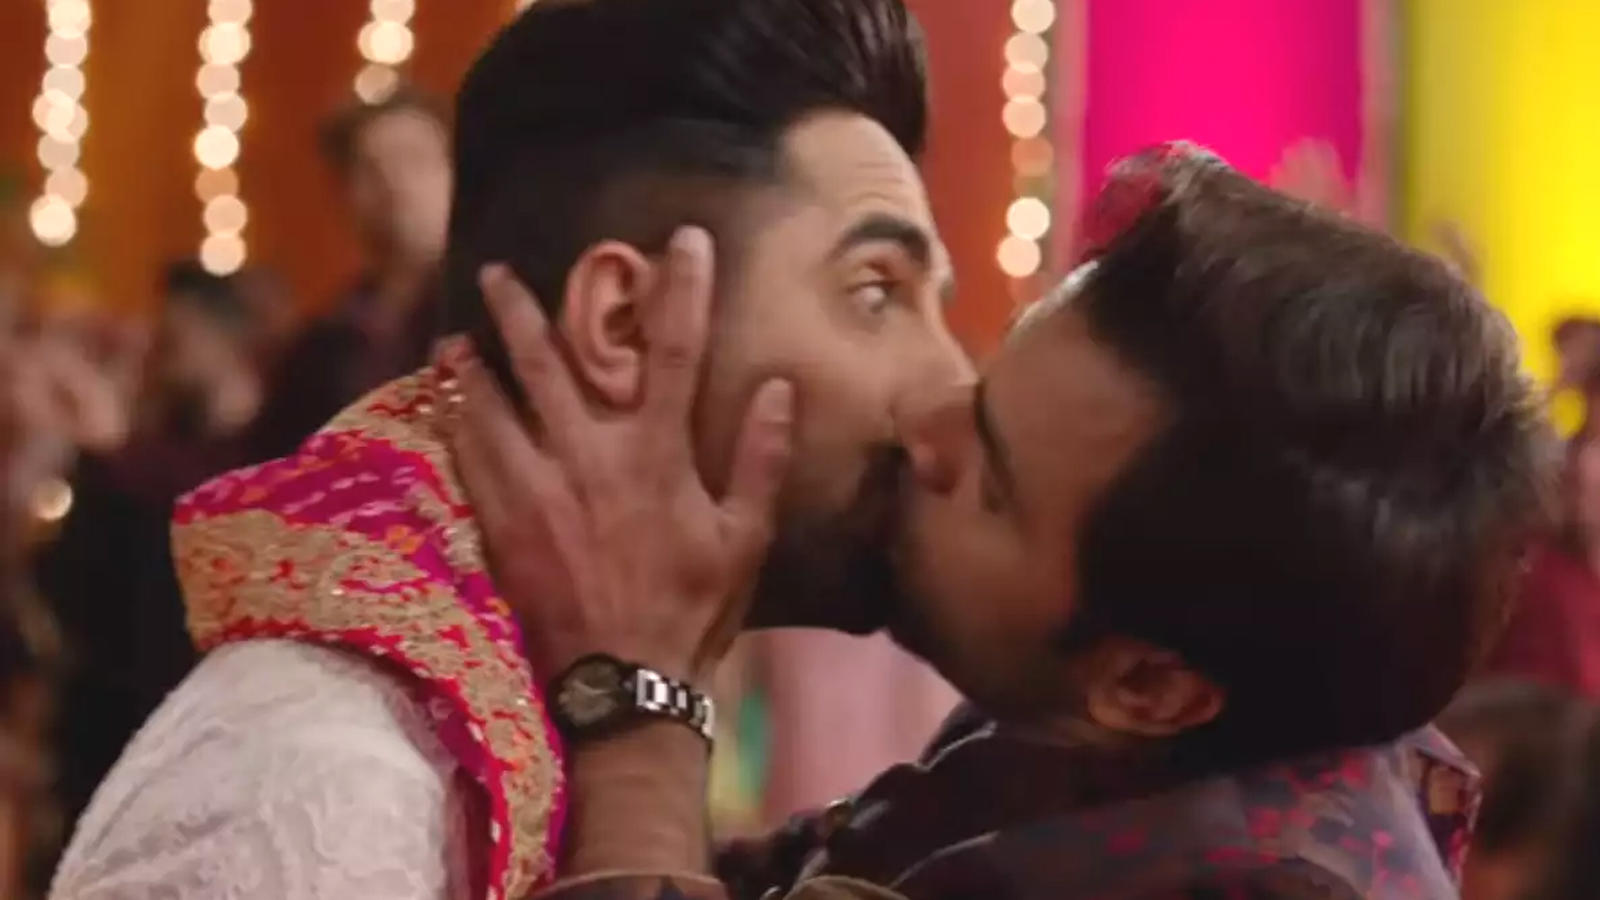 ayushmann-khurranas-wife-tahira-kashyap-reacts-to-her-husbands-lip-lock-scene-with-his-male-co-star-in-shubh-mangal-zyaada-saavdhan